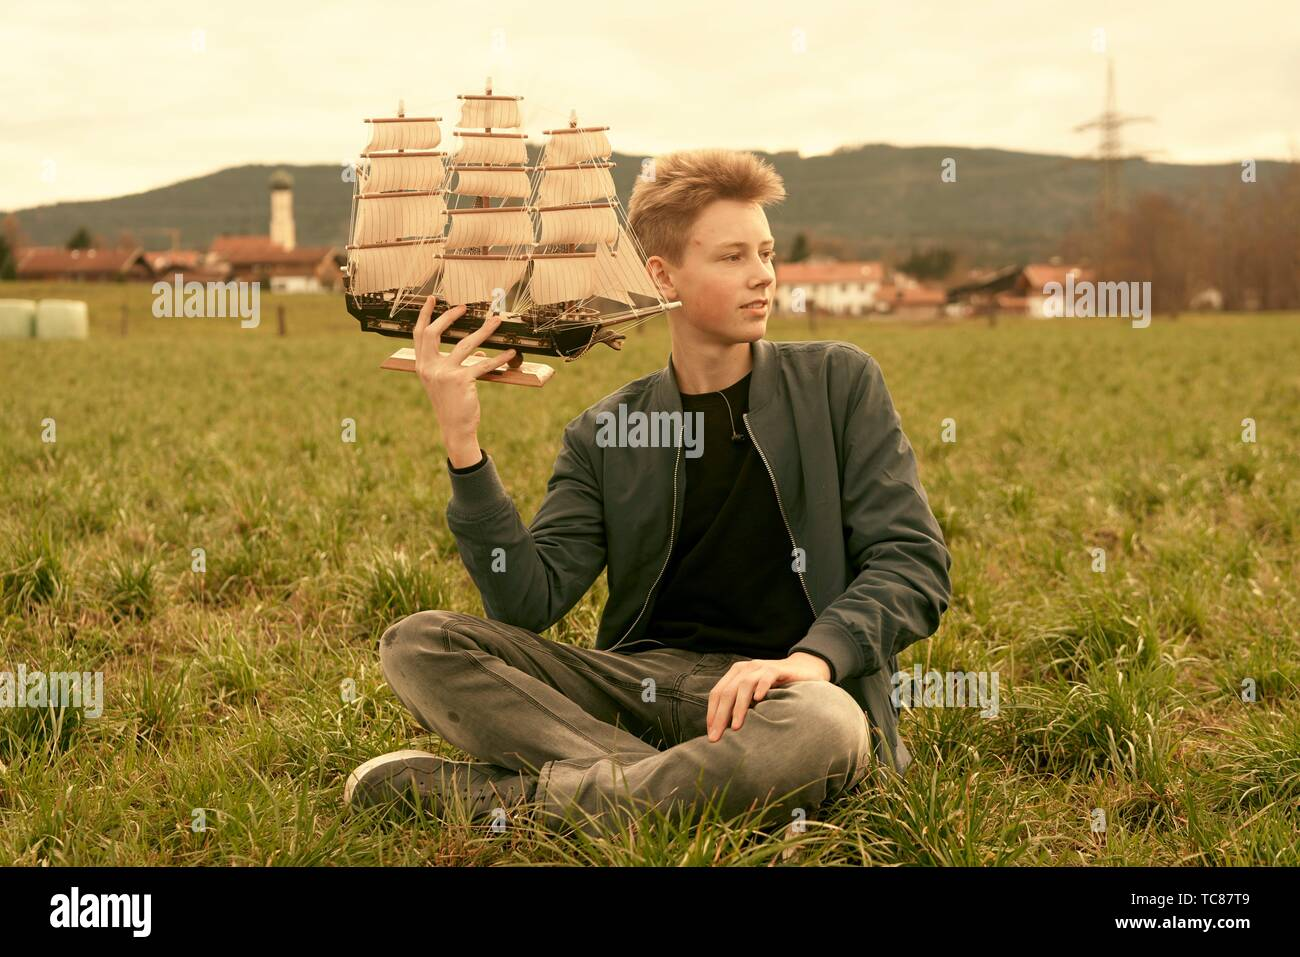 male teenager holding ship while sitting outdoors on meadow at countryside, travel lust, pensive mood, in Waakirchen, Bavaria, Germany - Stock Image